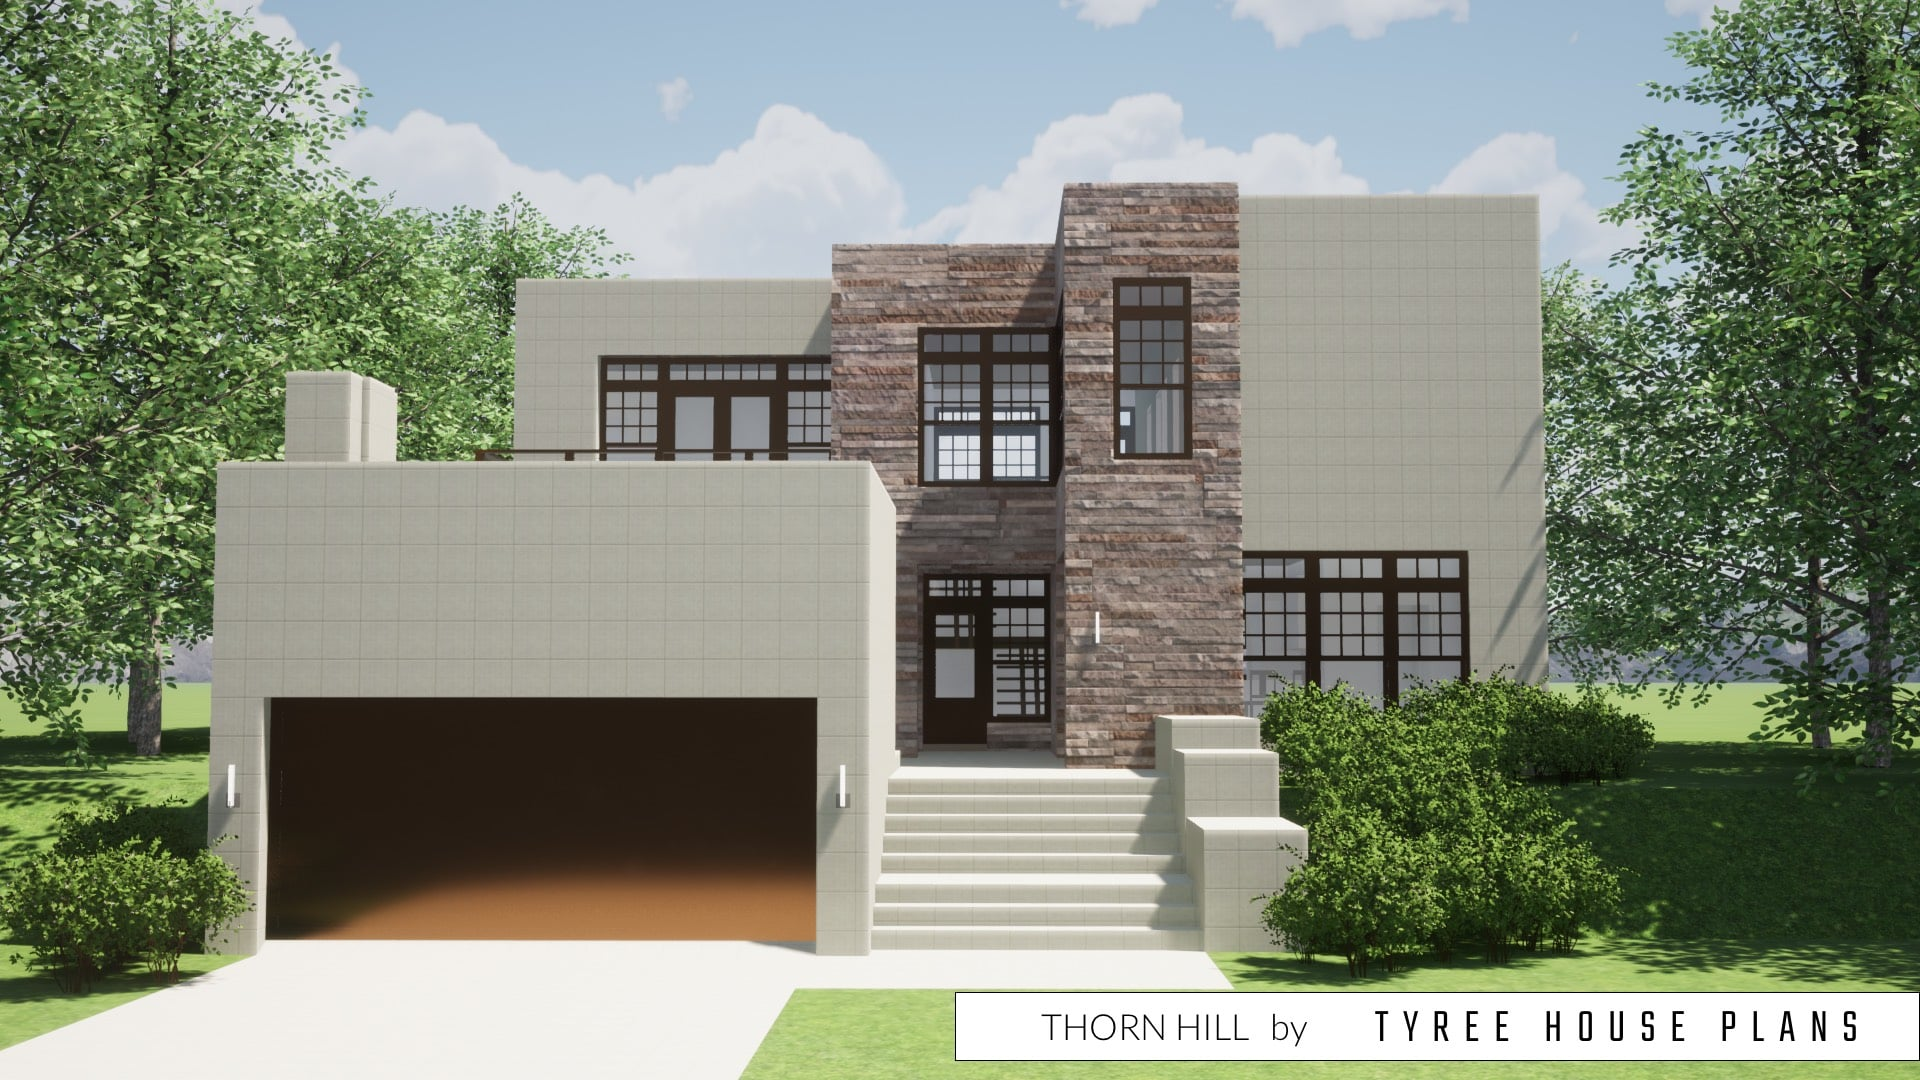 Thorn Hill House Plan by Tyree House Plans